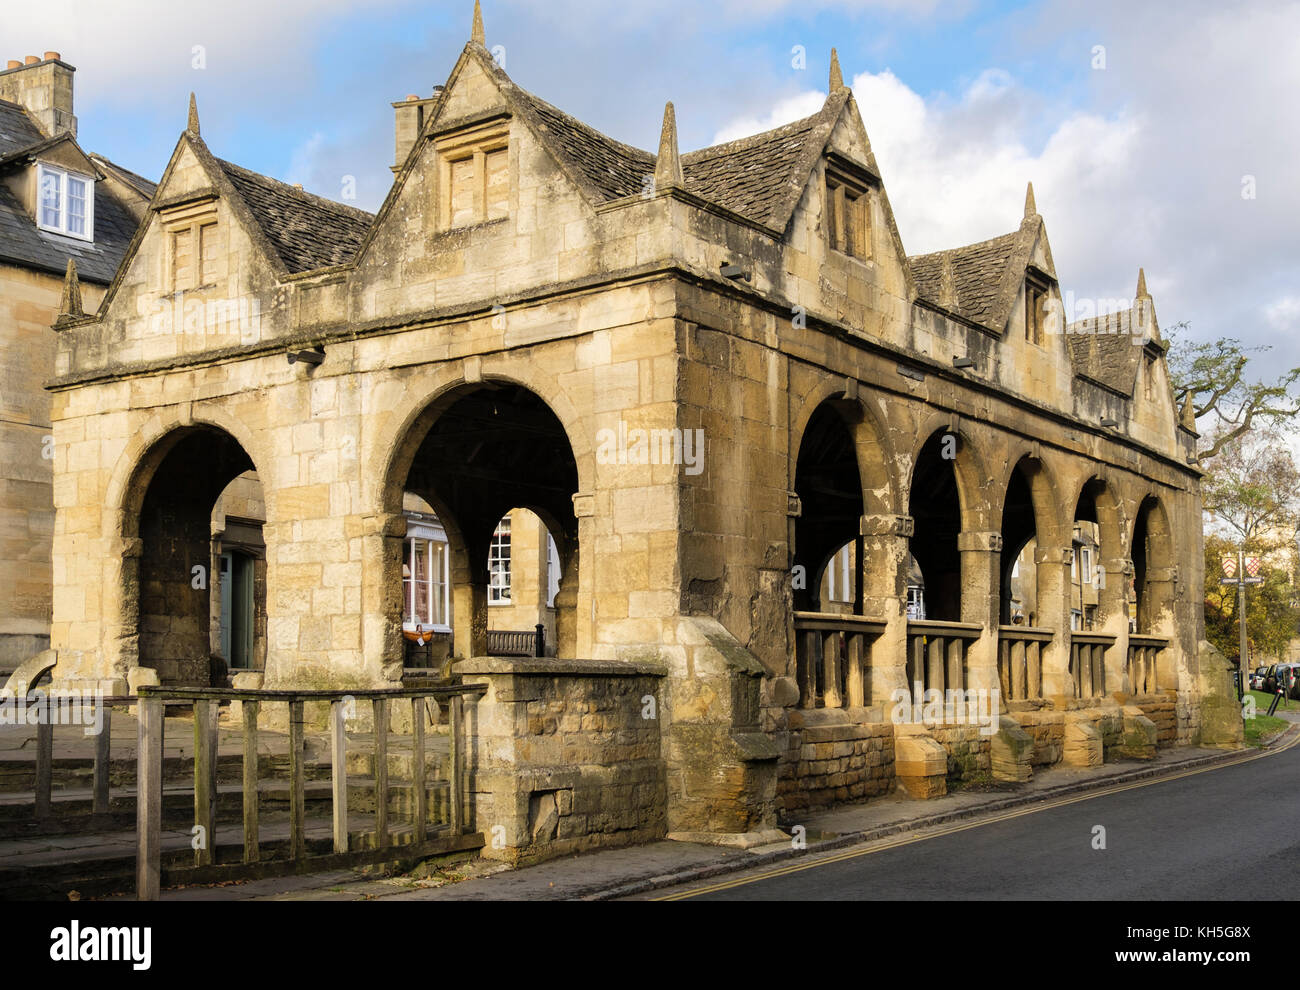 The old 17th century Market Hall in historic Cotswold stone village. High Street, Chipping Campden, Cotswolds, Gloucestershire, - Stock Image